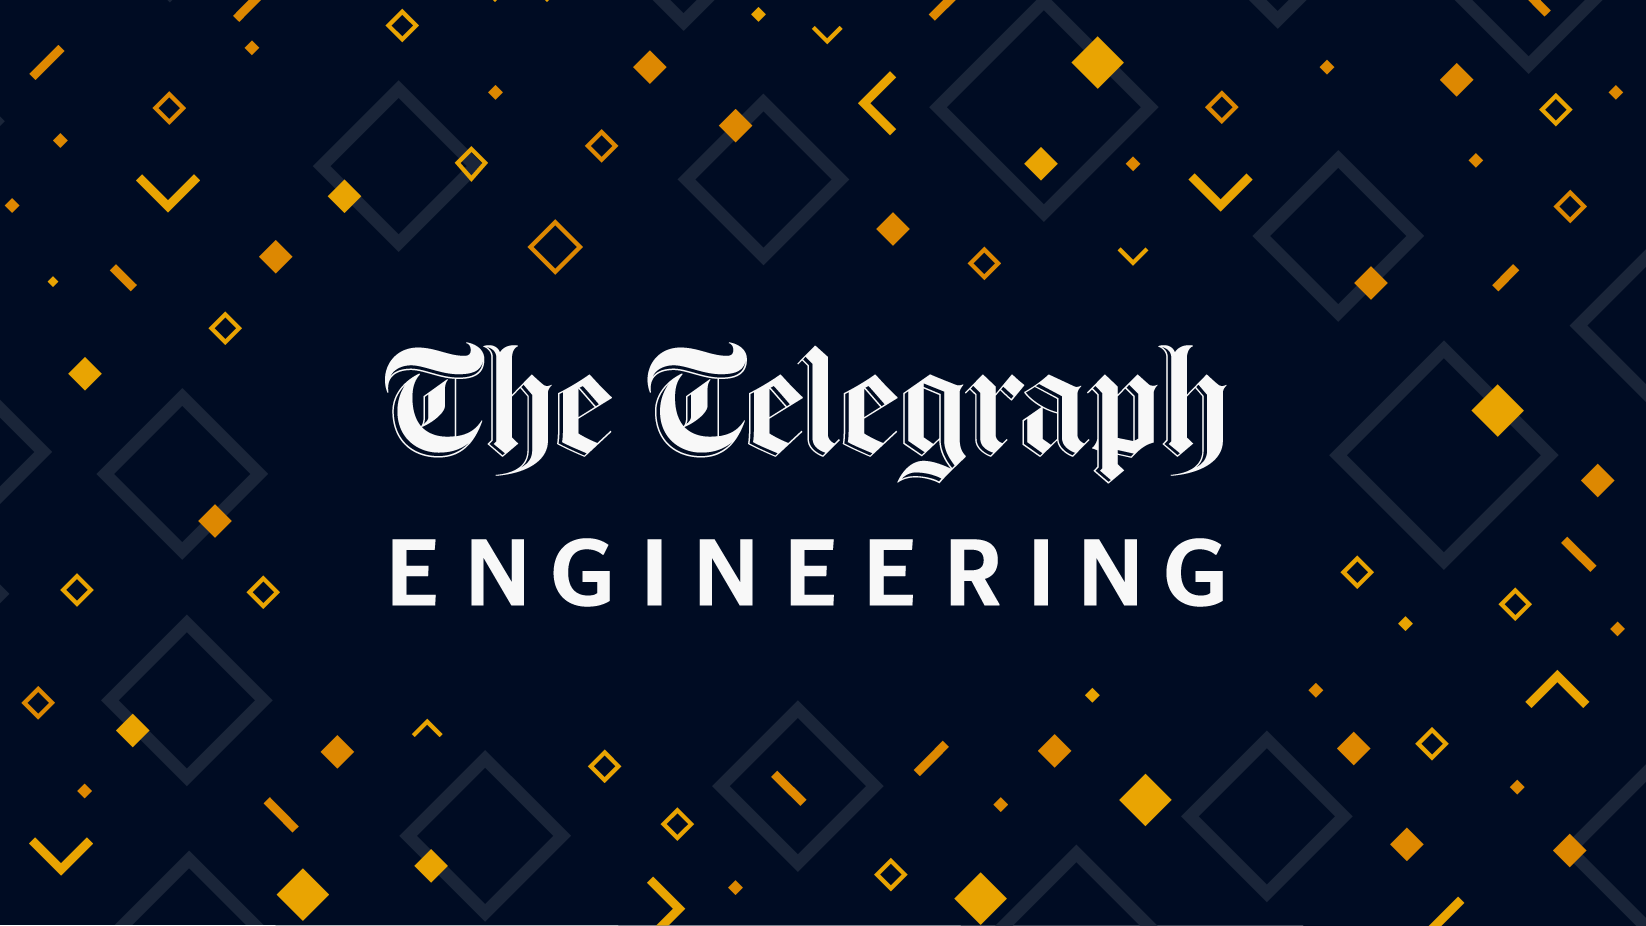 The Telegraph Engineering